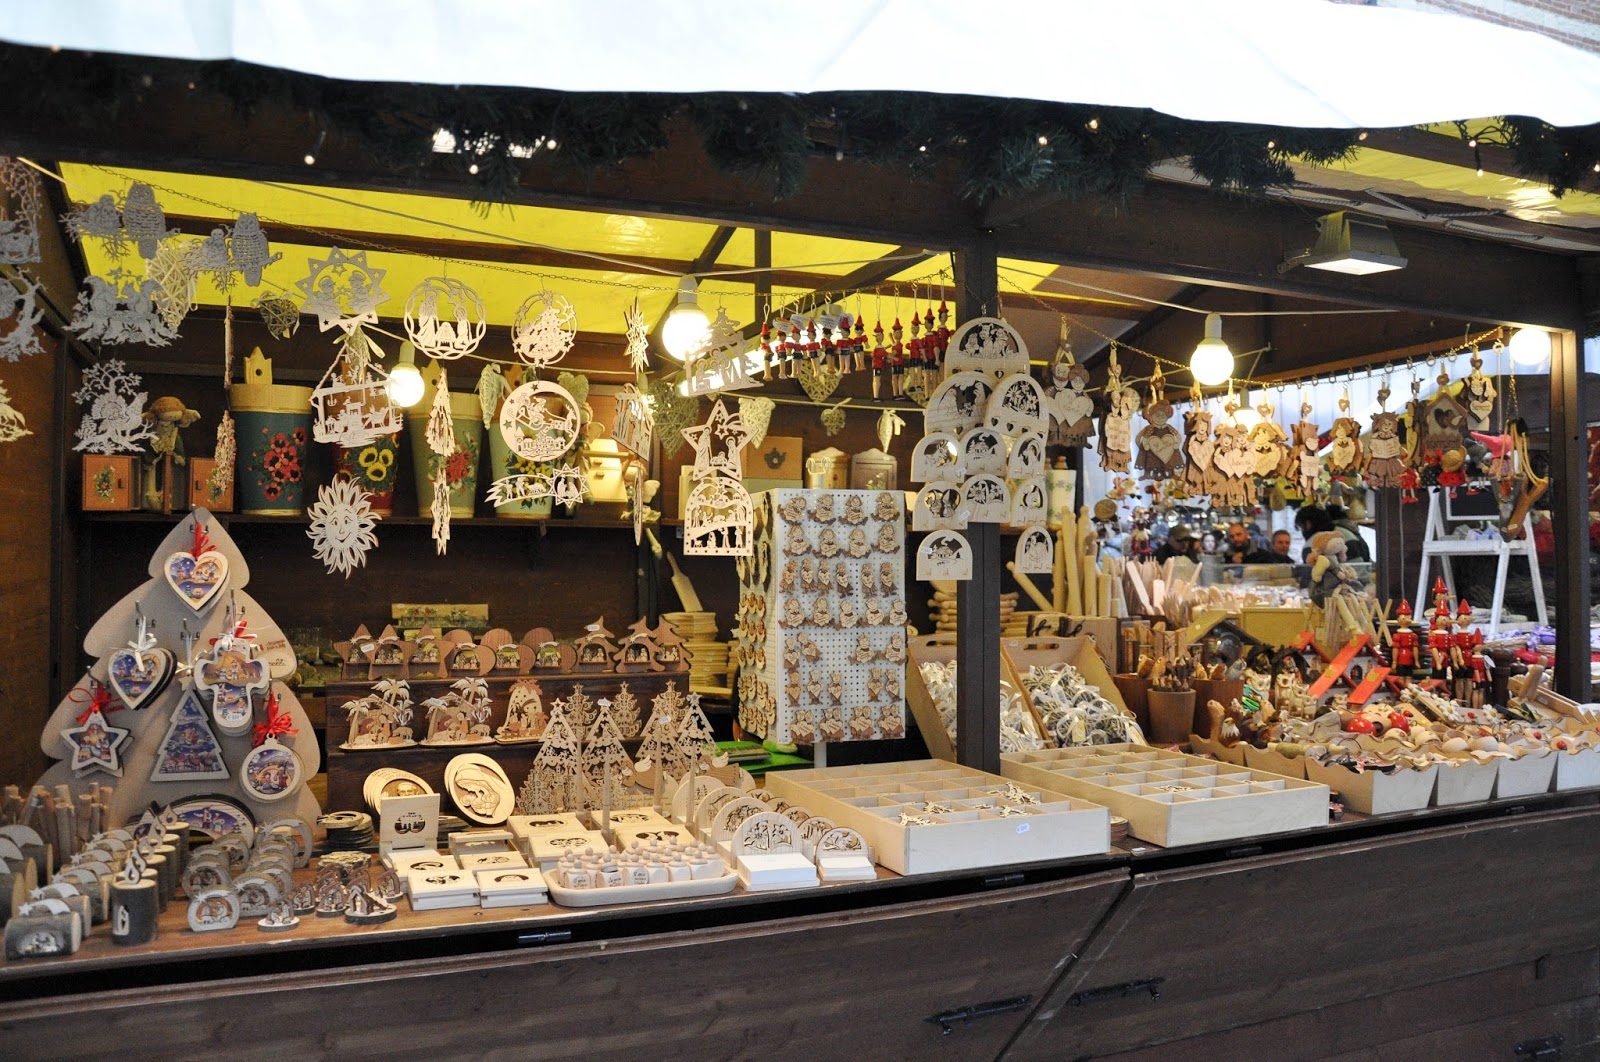 A stall with Christmas decorations made of wood, Nuremberg Christmas market, Verona, Italy